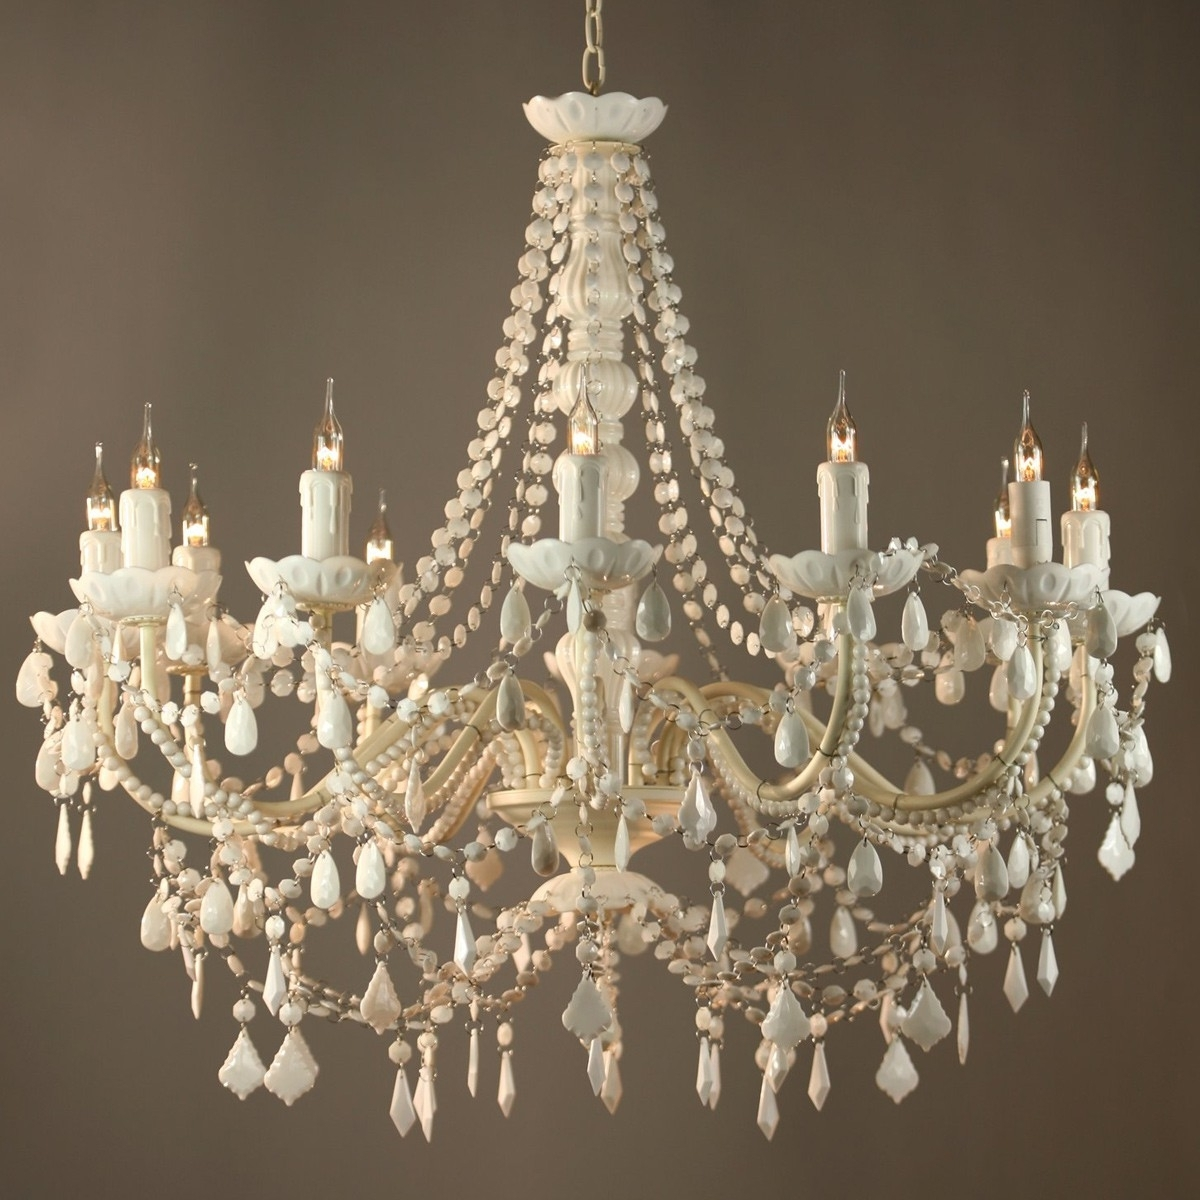 Vintage Style Chandeliers Intended For Trendy Chandeliers Vintage (View 14 of 15)